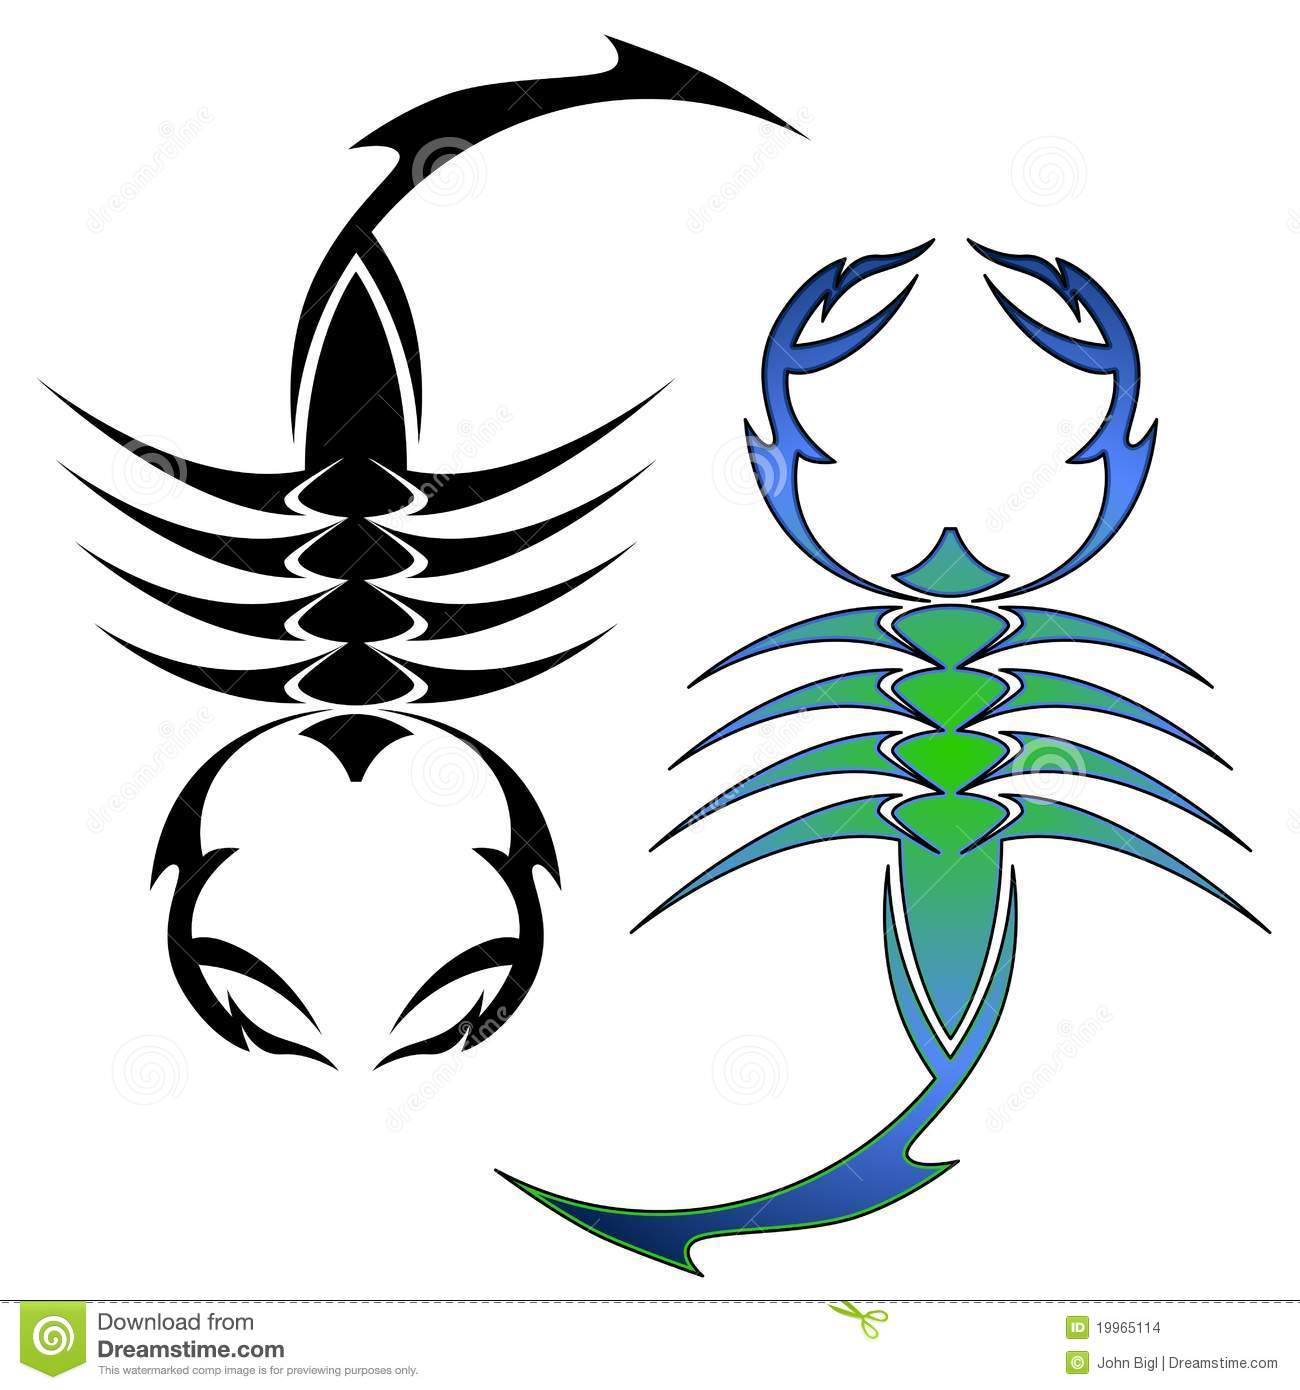 Scorpion Symbols Stock Vector Illustration Of Toxic 19965114